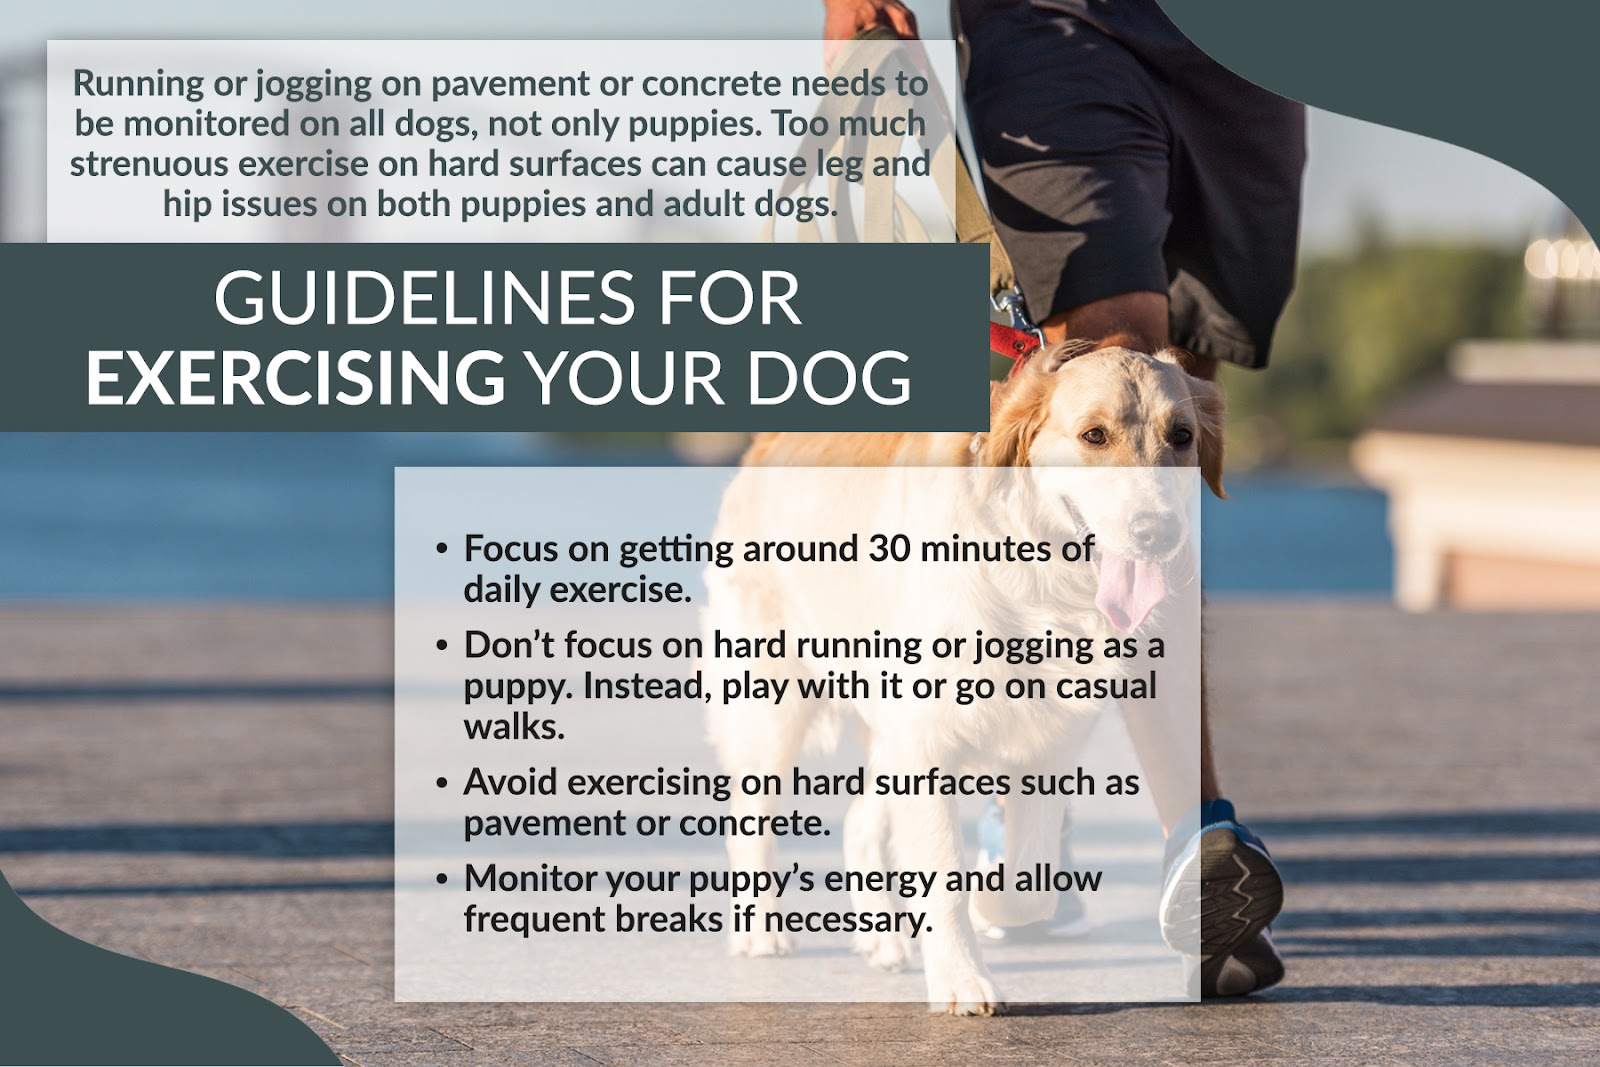 guidelines for exercising your dog